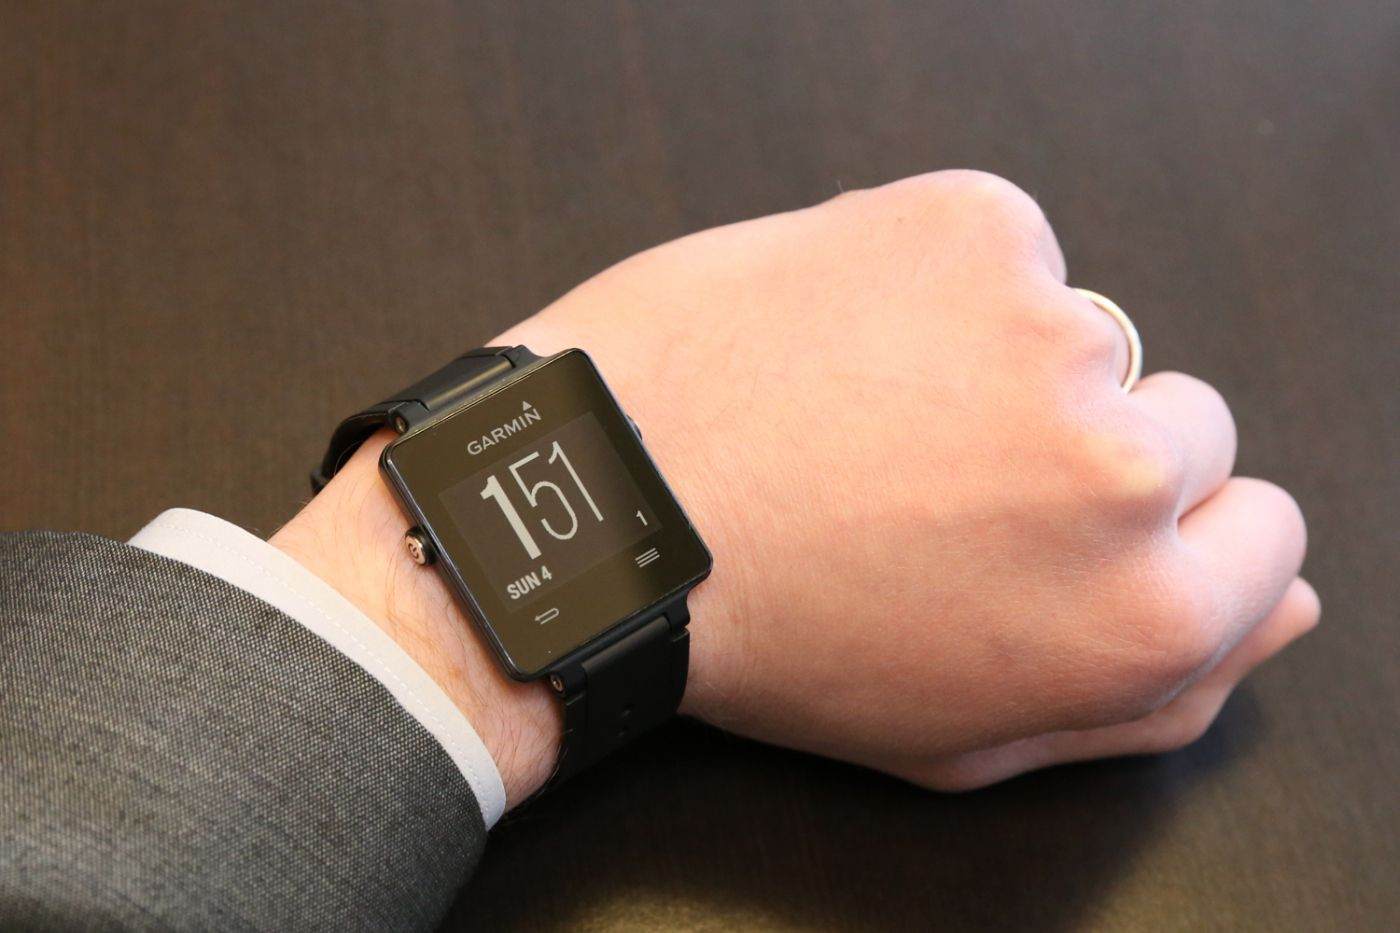 Garmin just entered the smartwatch race with the 250